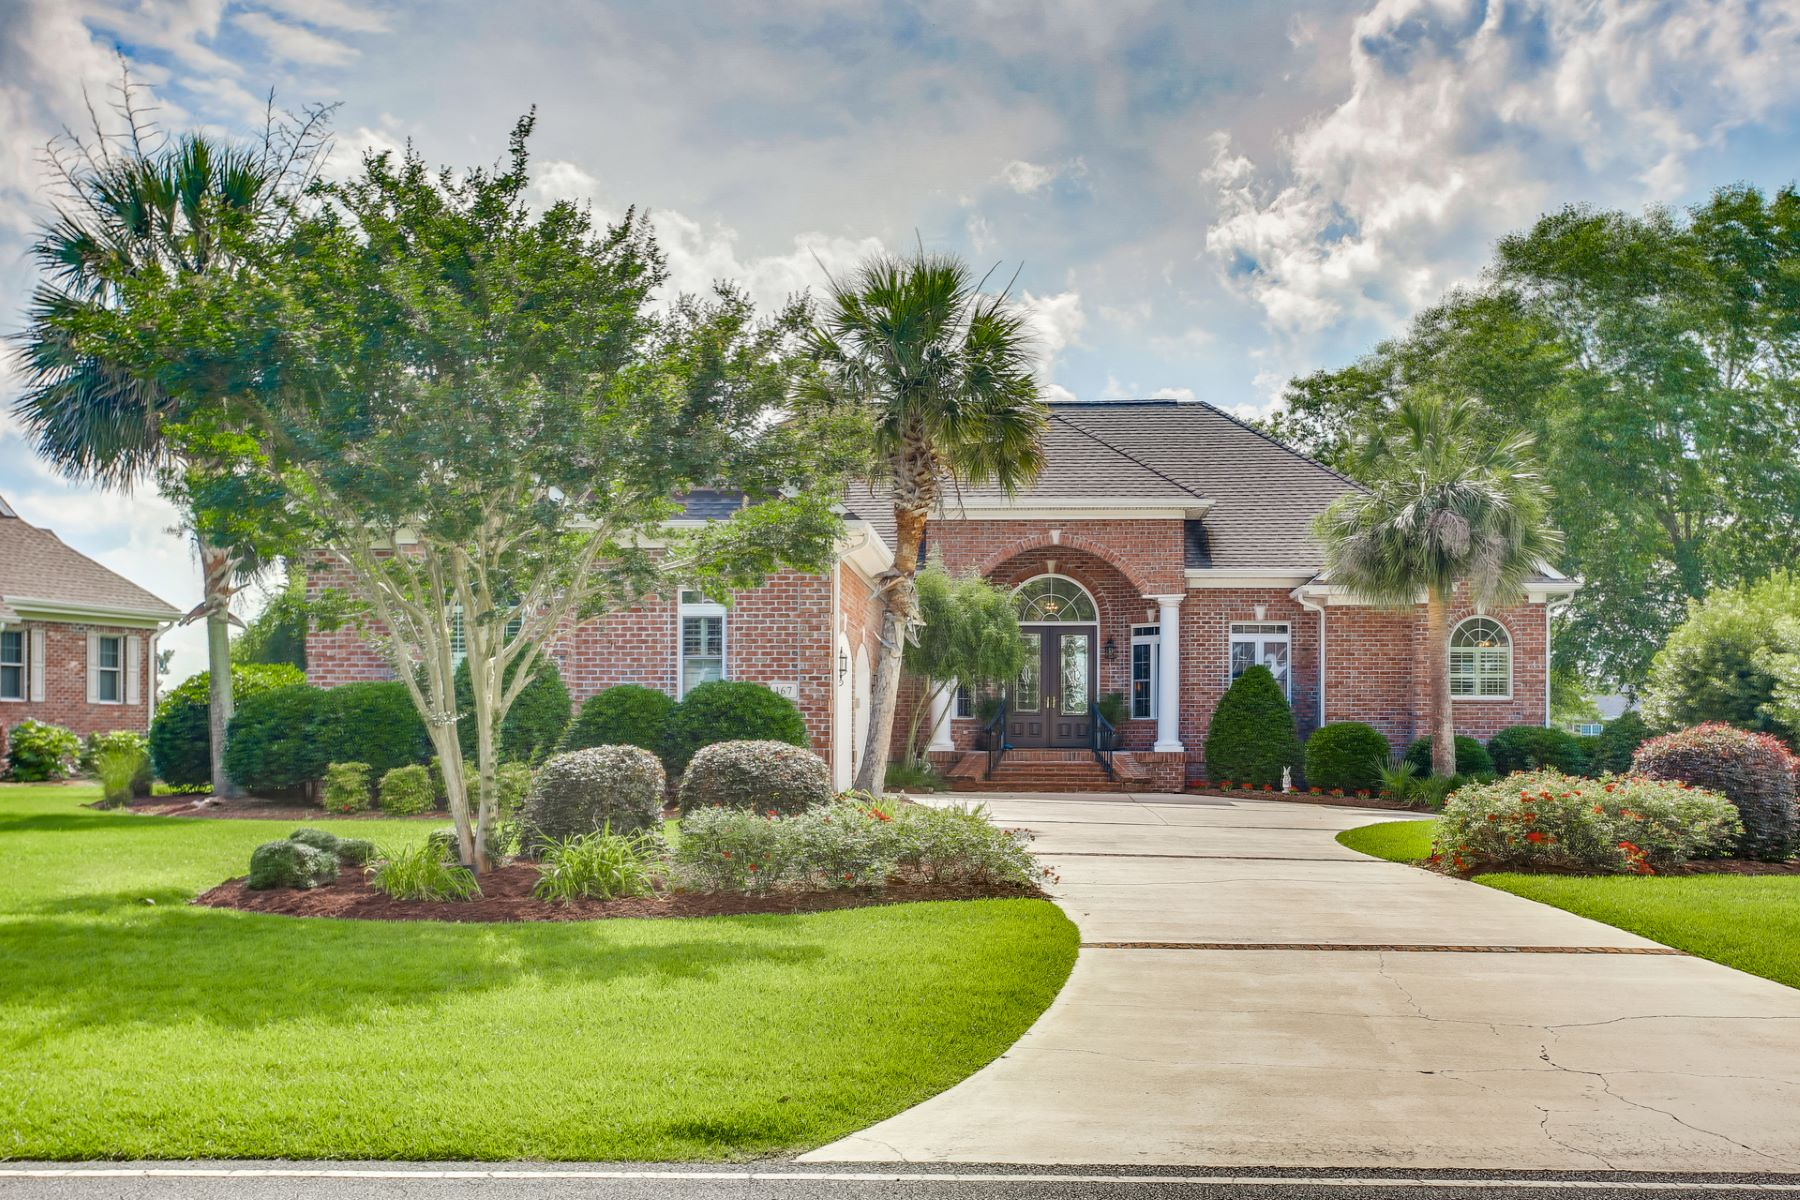 Single Family Homes for Active at Elegant Custom Home with Panoramic Views 167 Windsor Circle SW Ocean Isle Beach, North Carolina 28469 United States